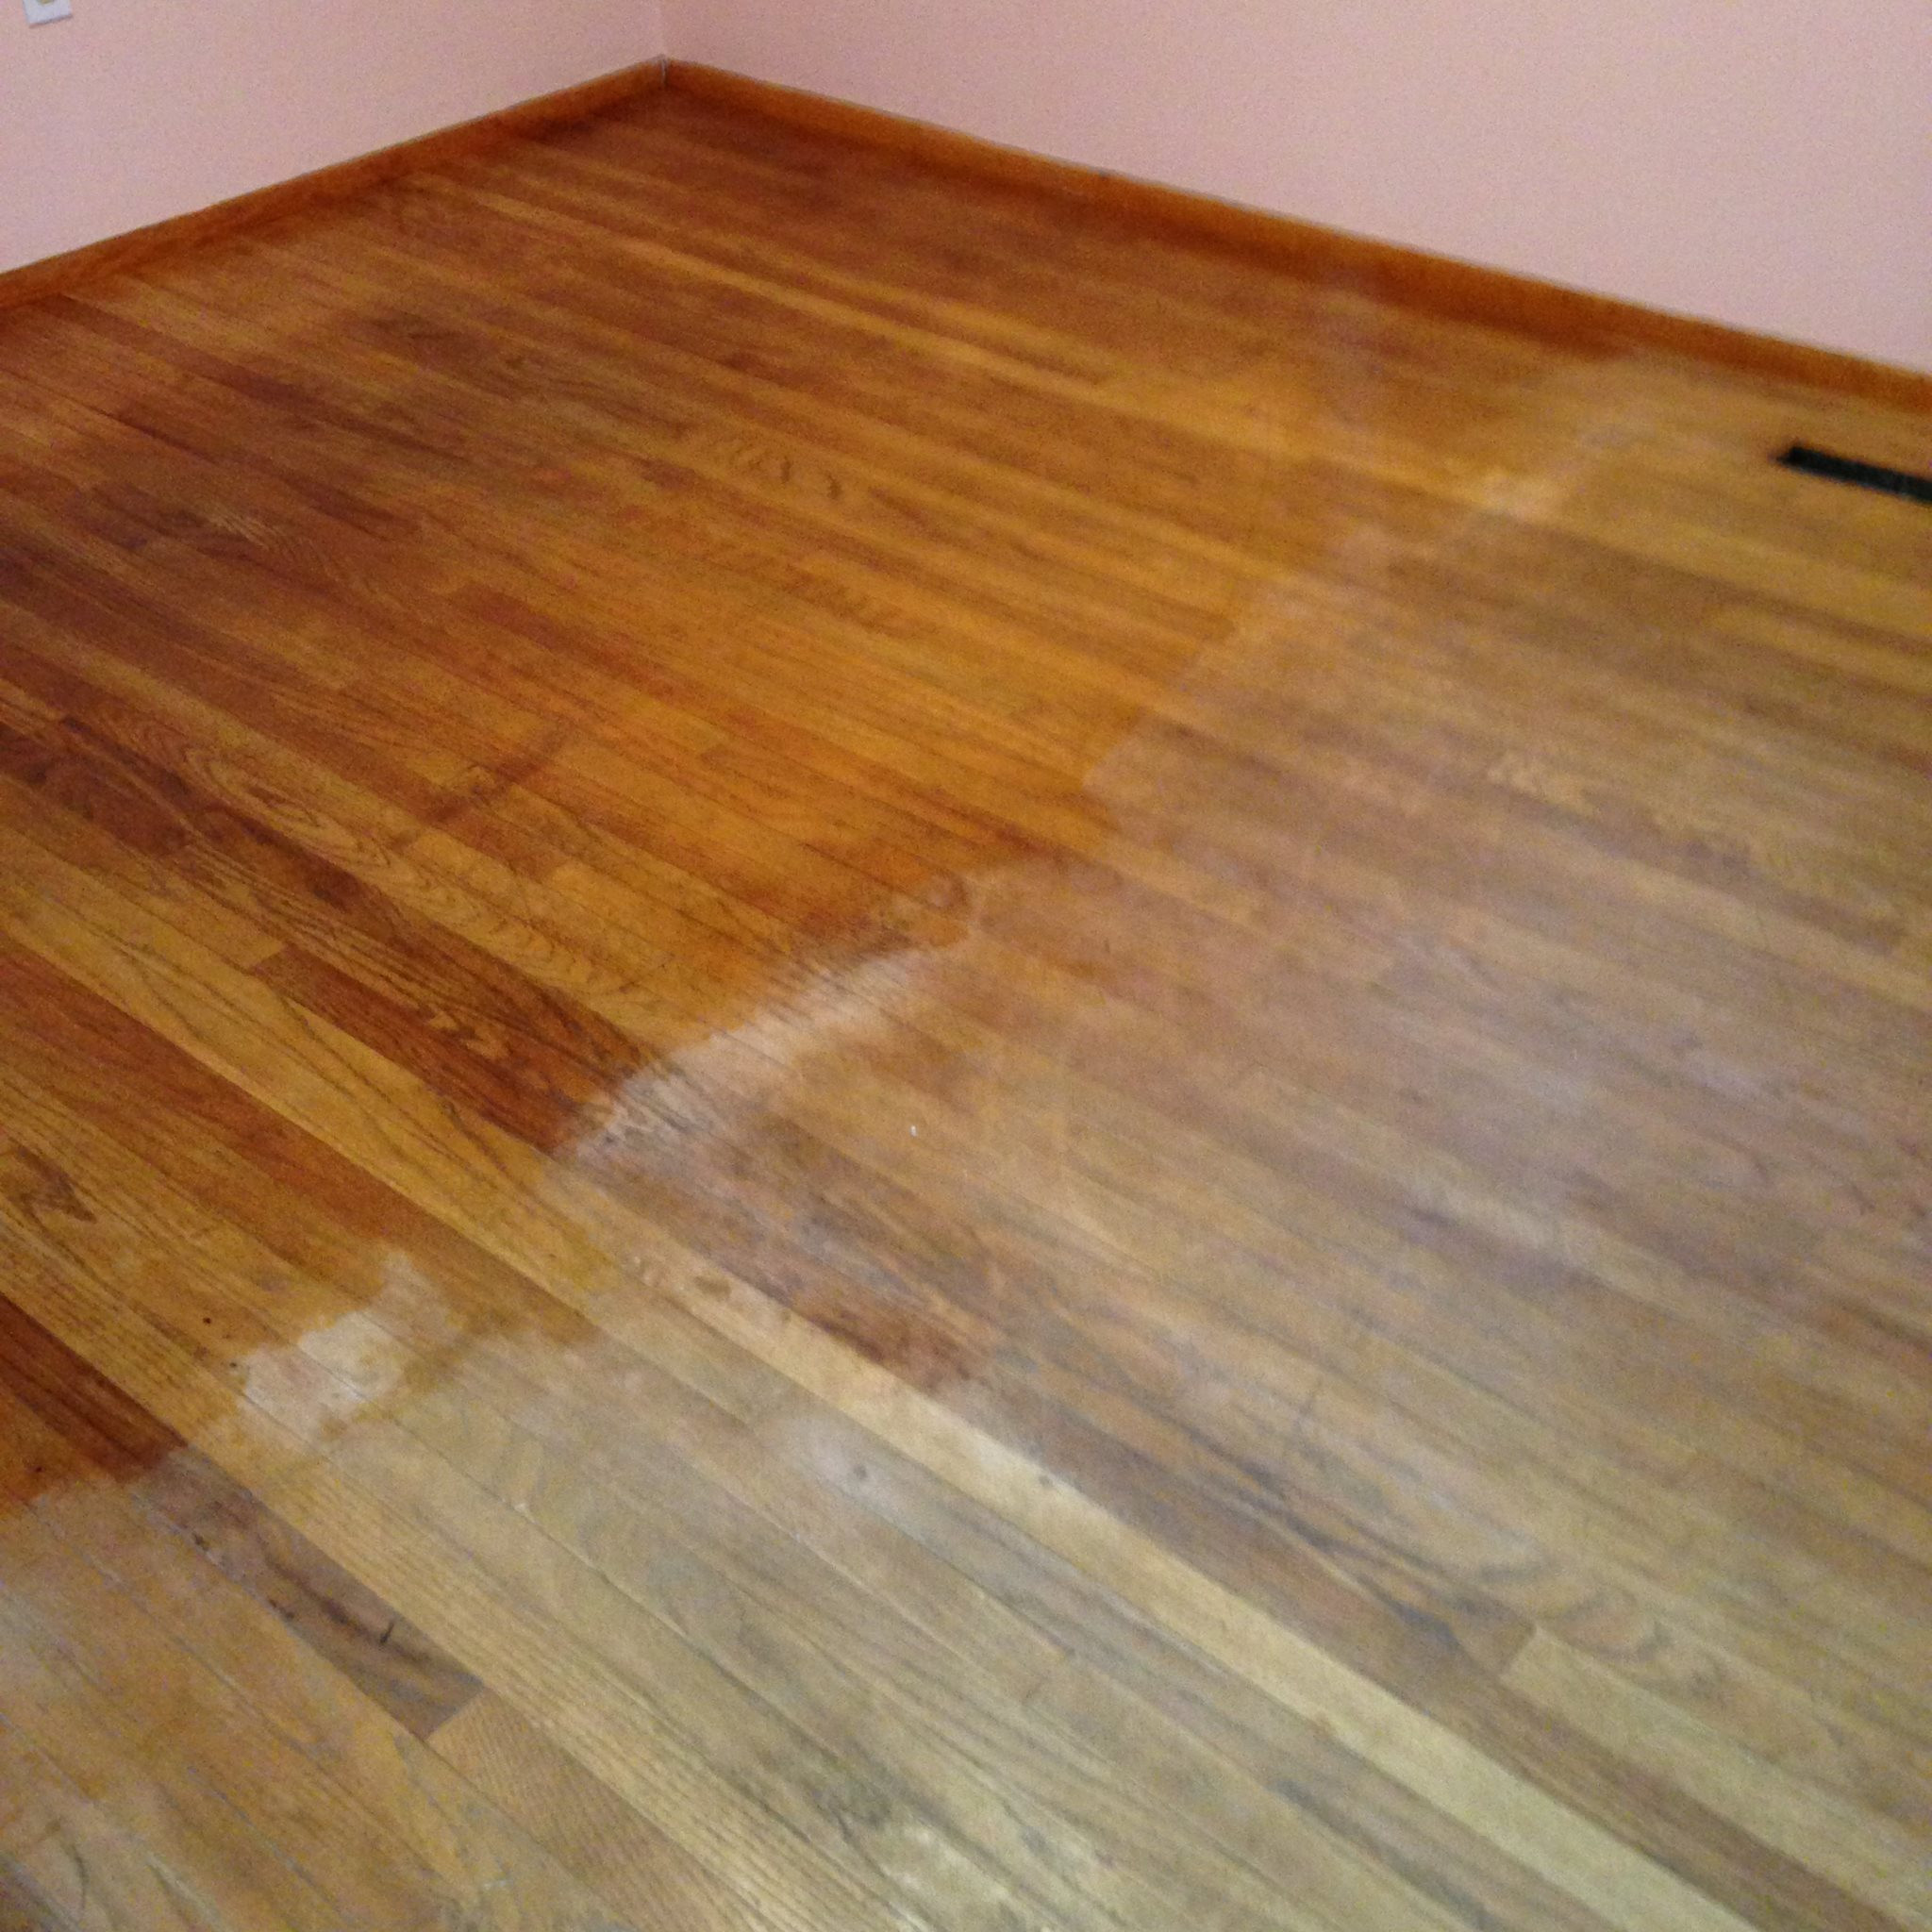 hardwood floor care and cleaning of 15 wood floor hacks every homeowner needs to know intended for wood floor hacks 15